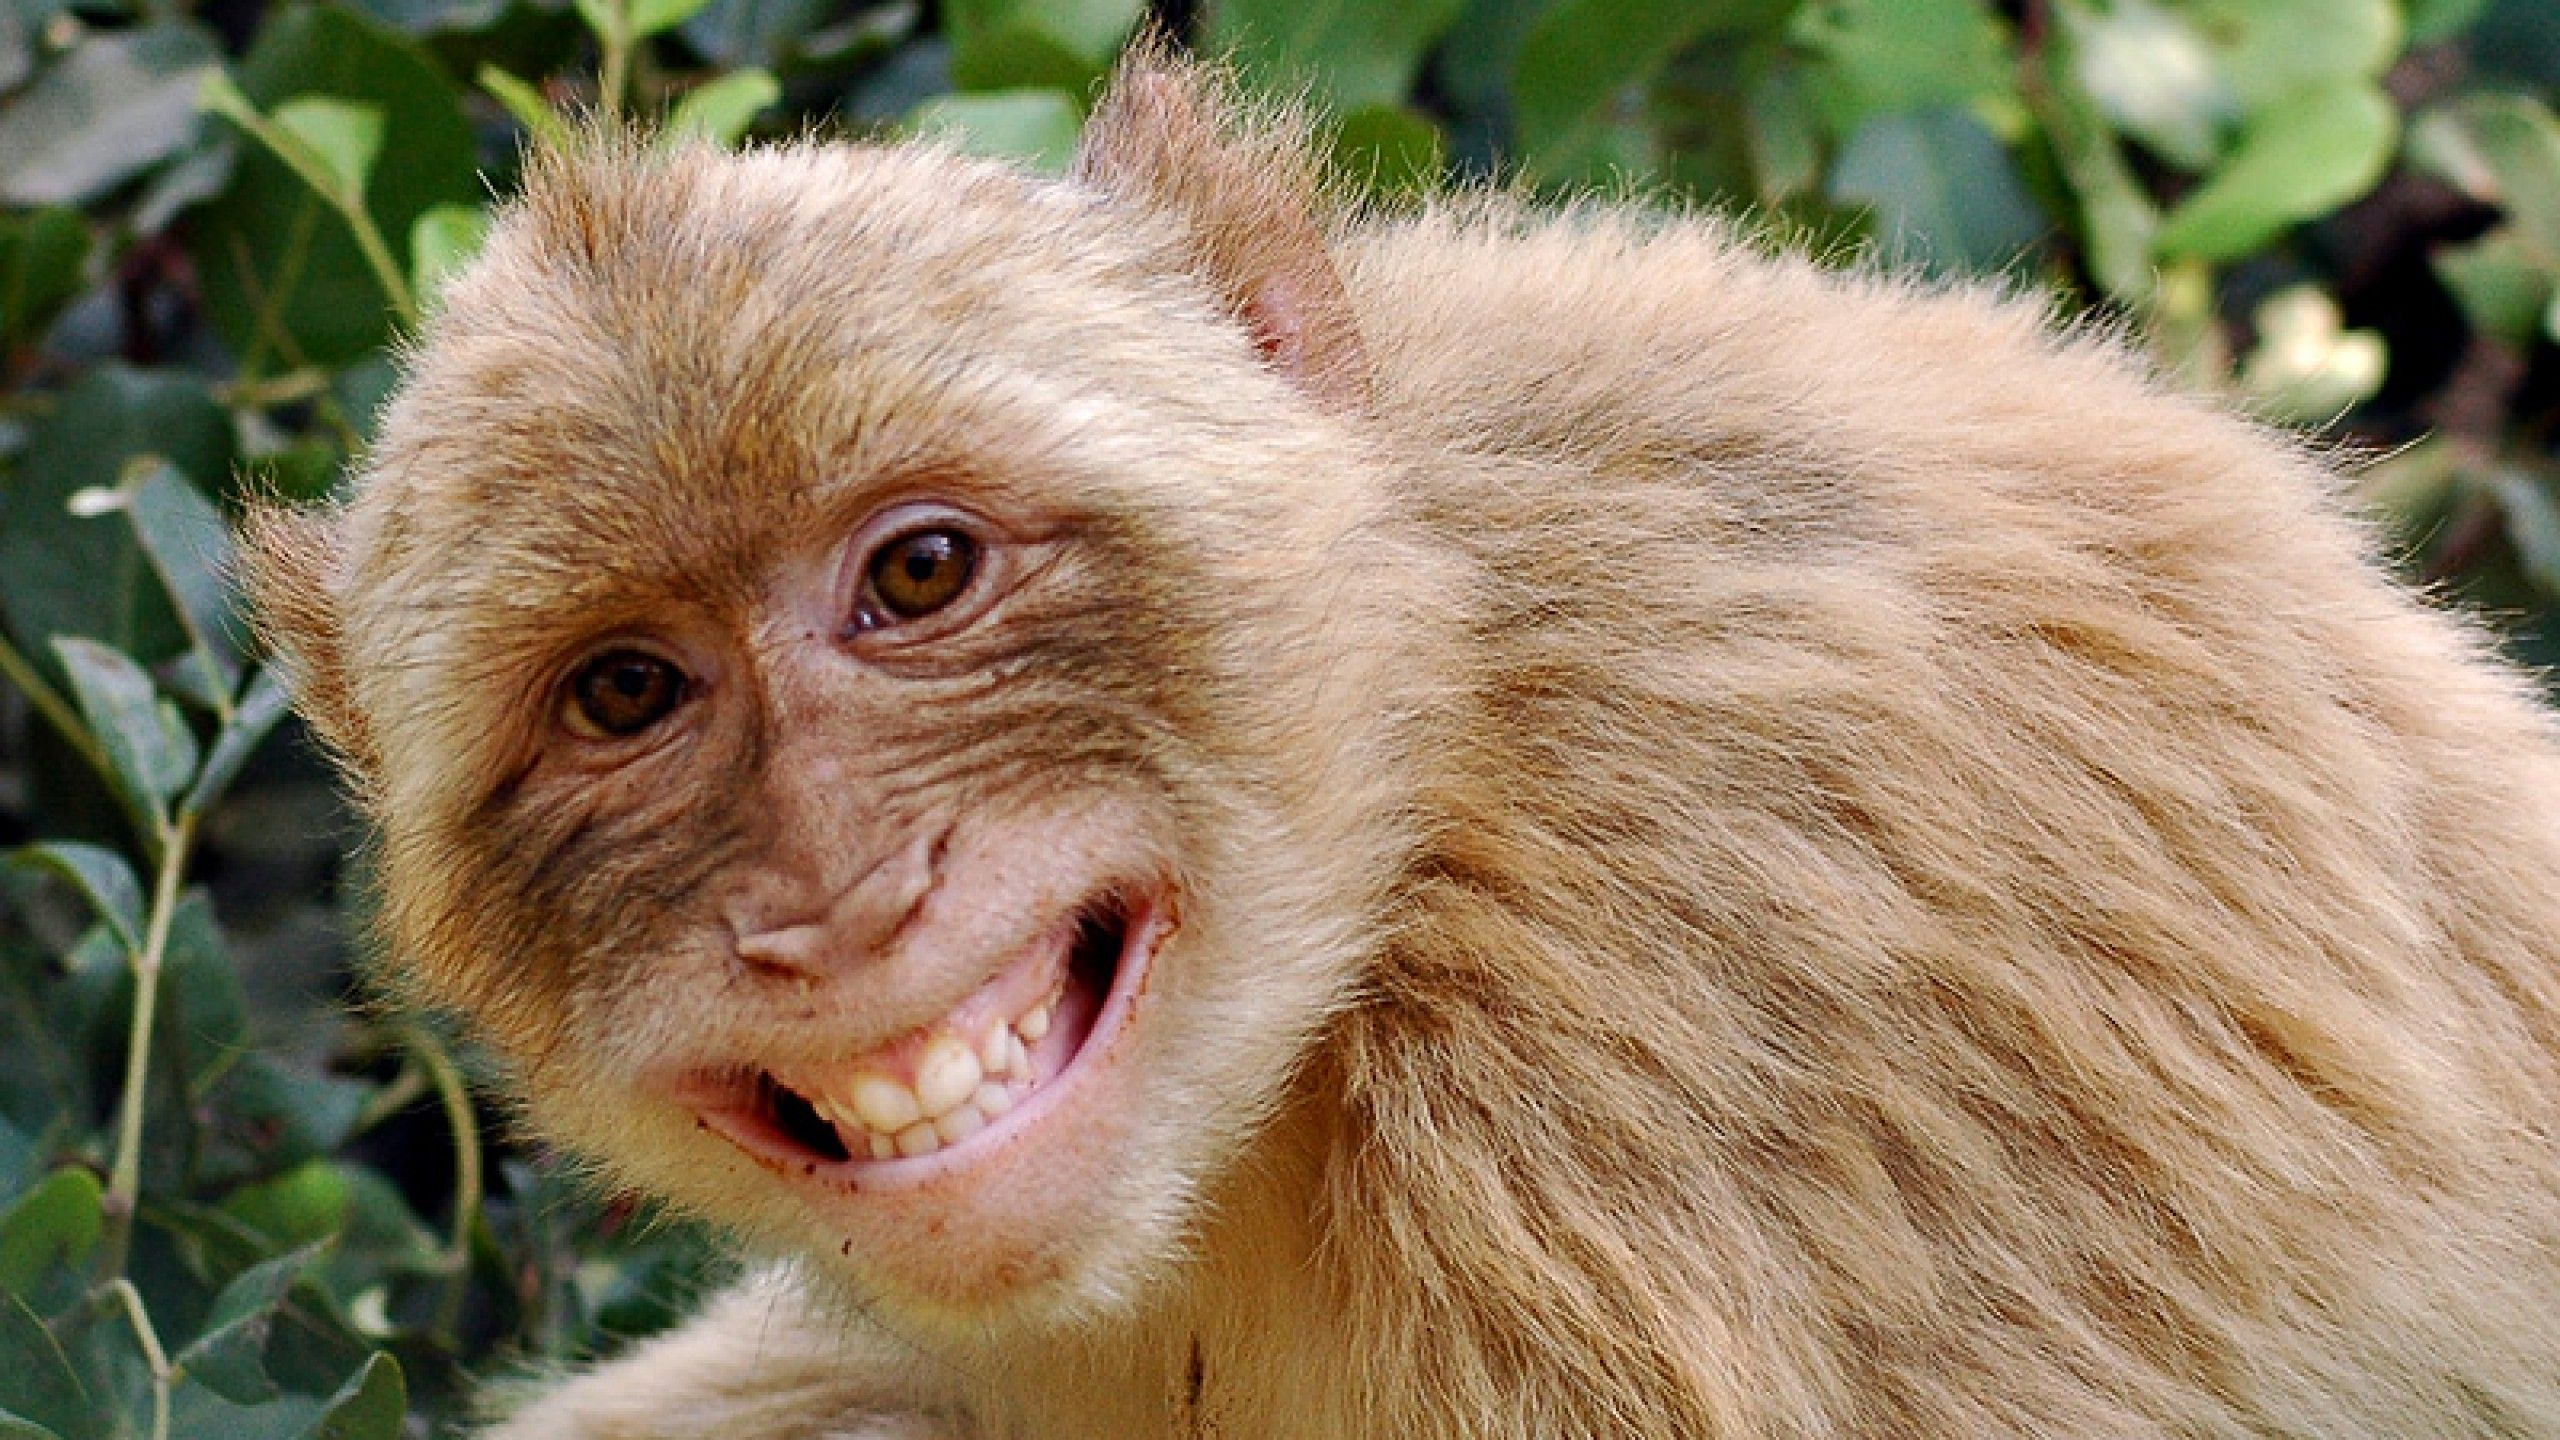 Monkey Wallpaper funny monkey pictures wallpaper wallpaper download monkey | hd